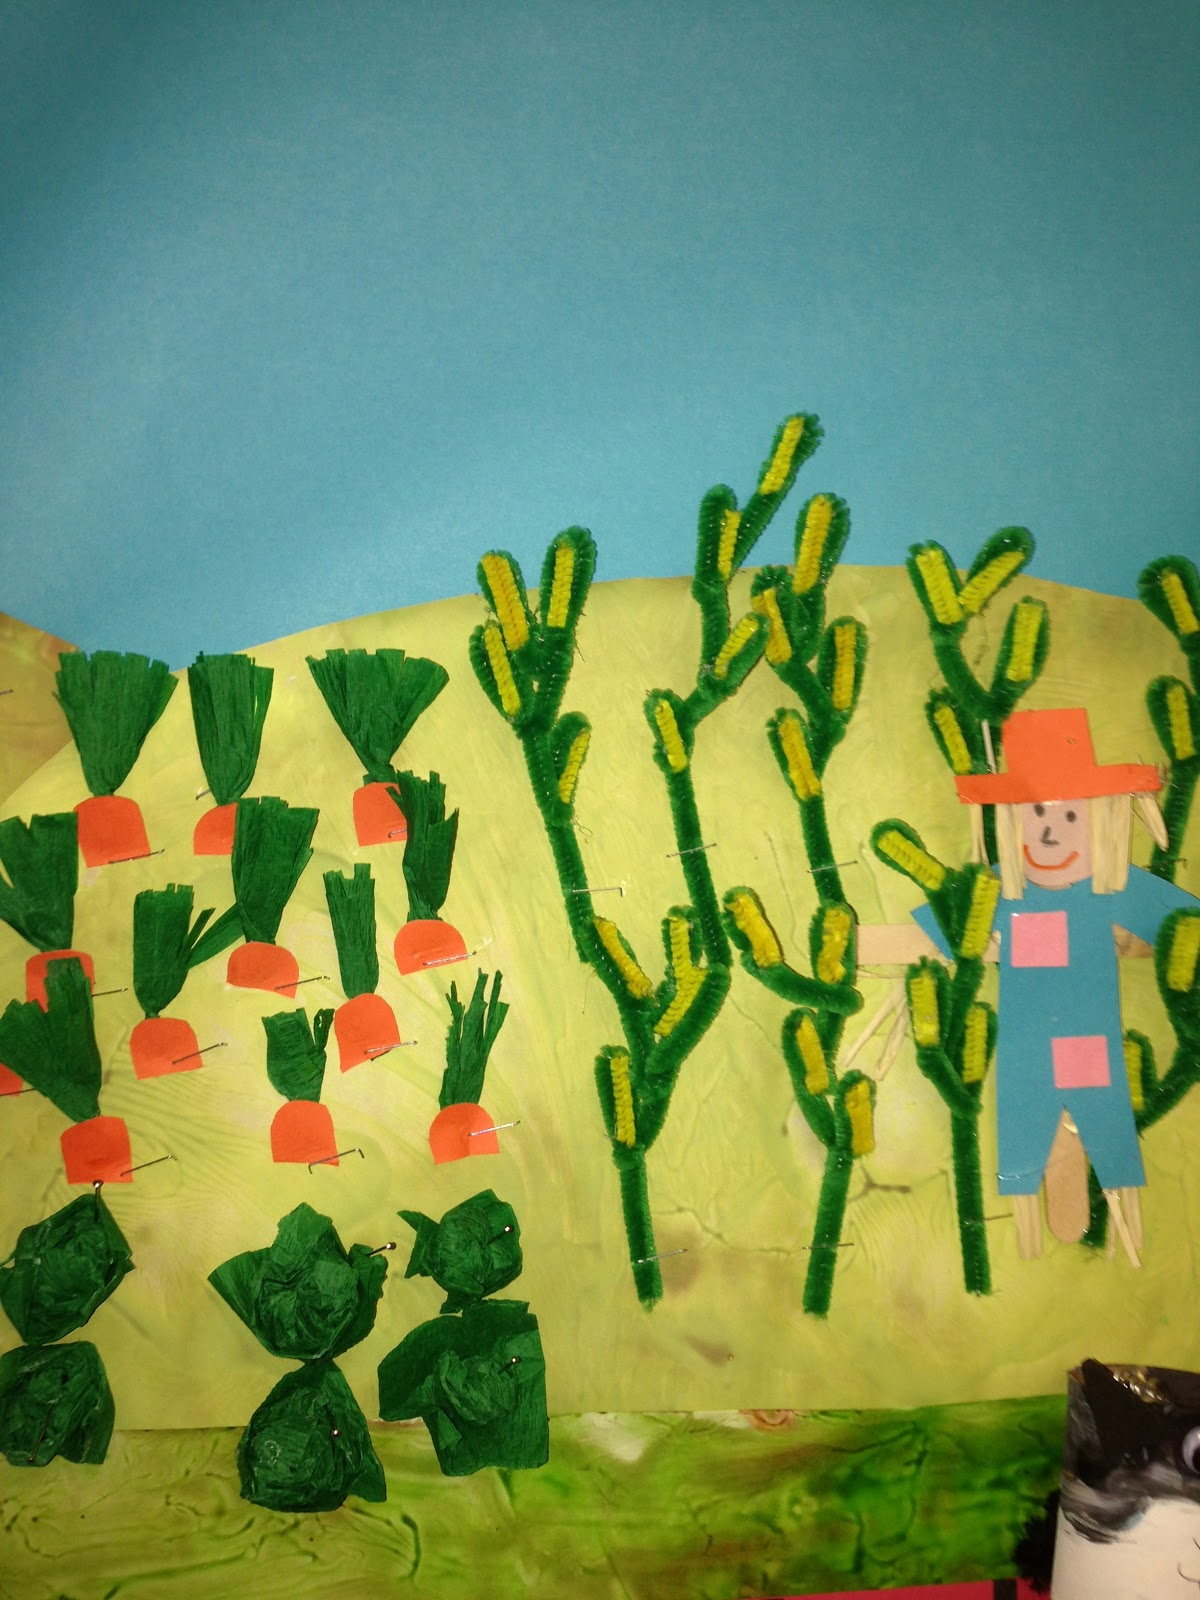 Art craft ideas and bulletin boards for elementary schools vegetable - Vegetable Garden Made With Pipe Cleaners And Tissue Paper